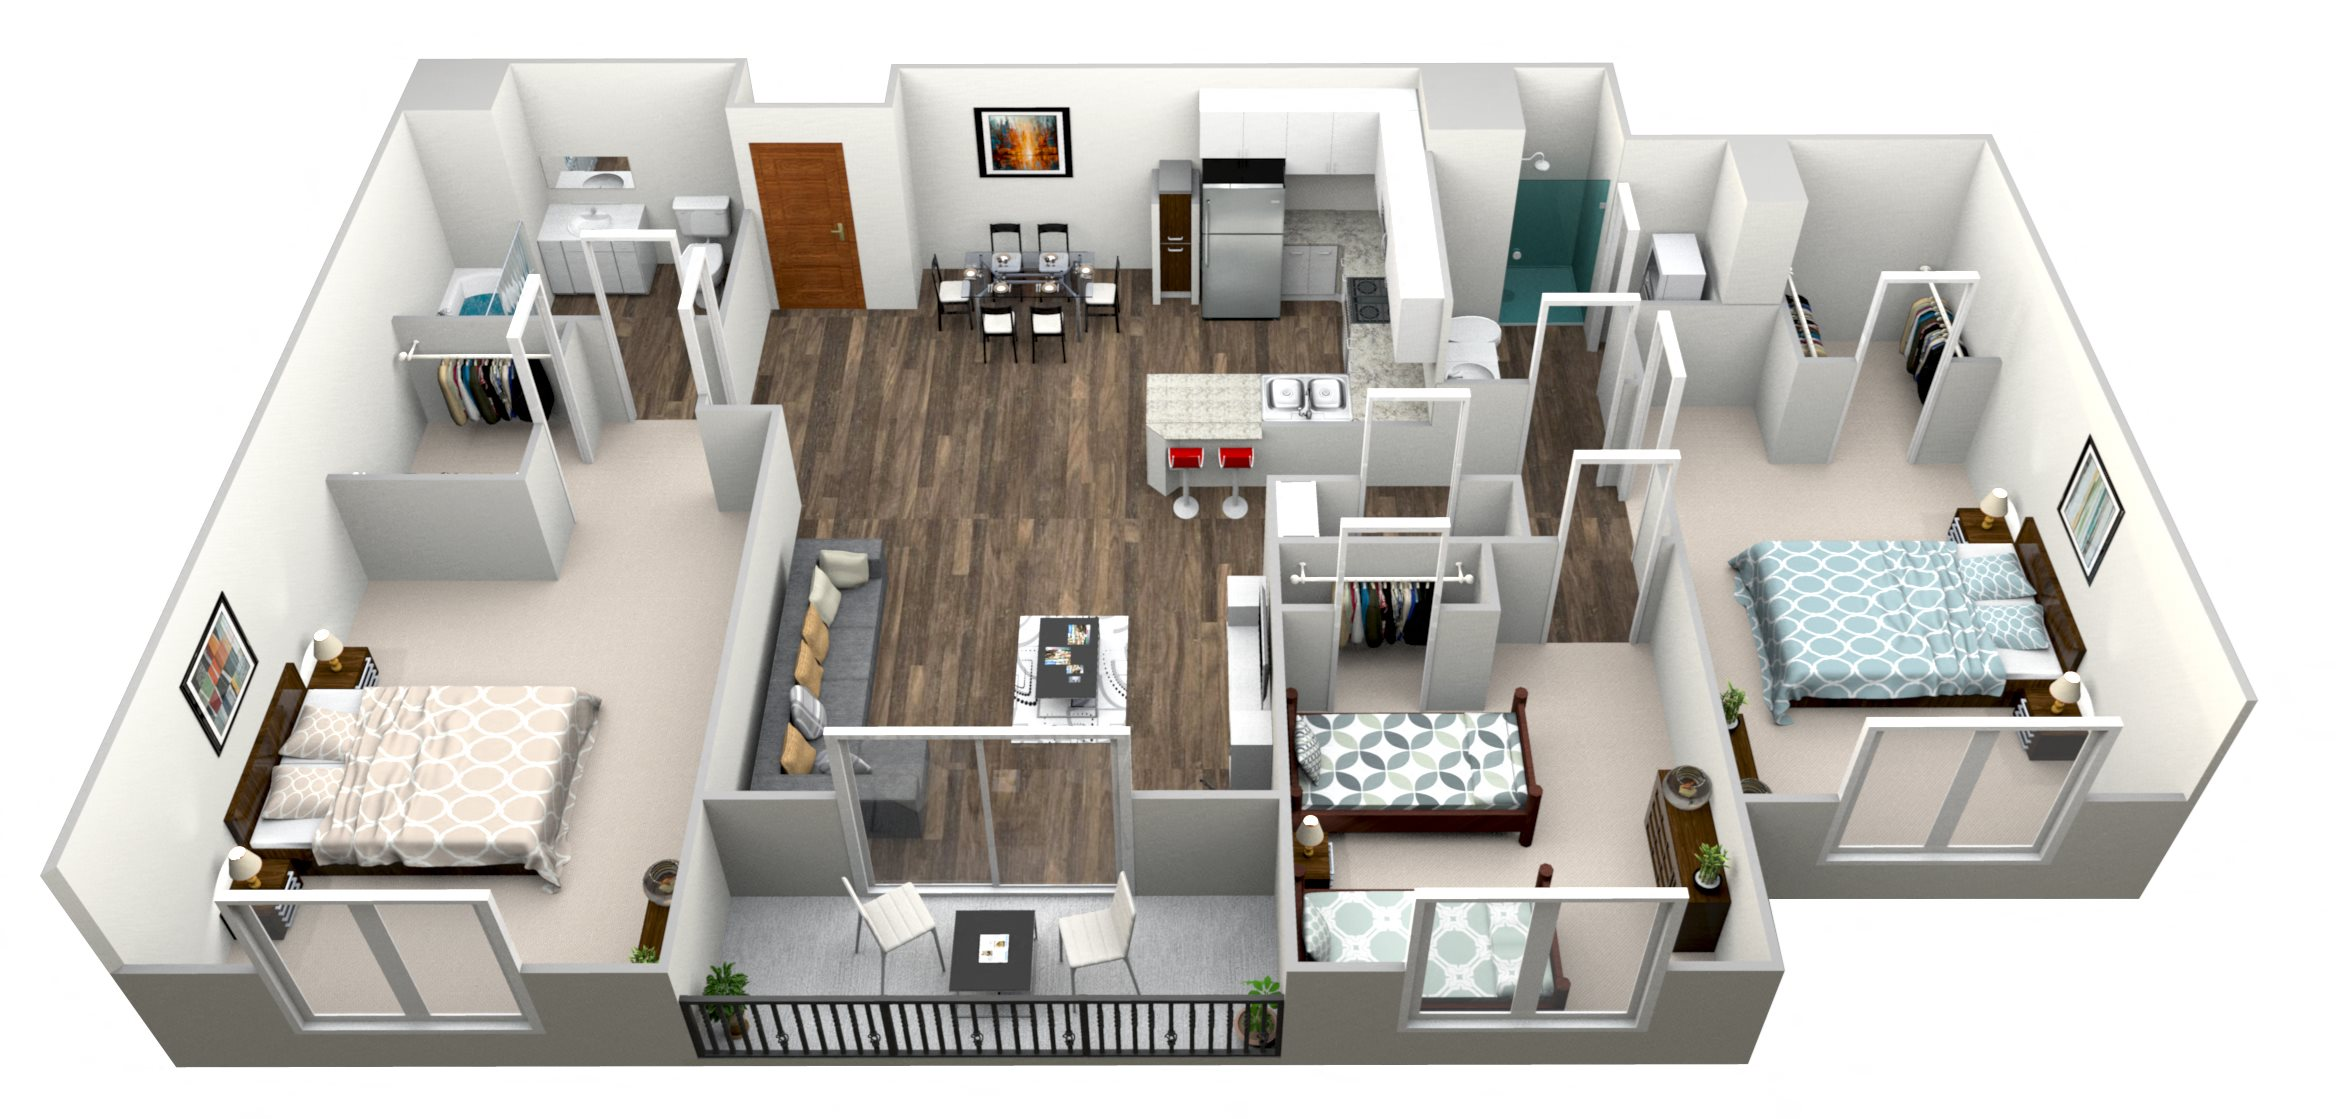 3 Bed 2 Bath G Floor Plan 7